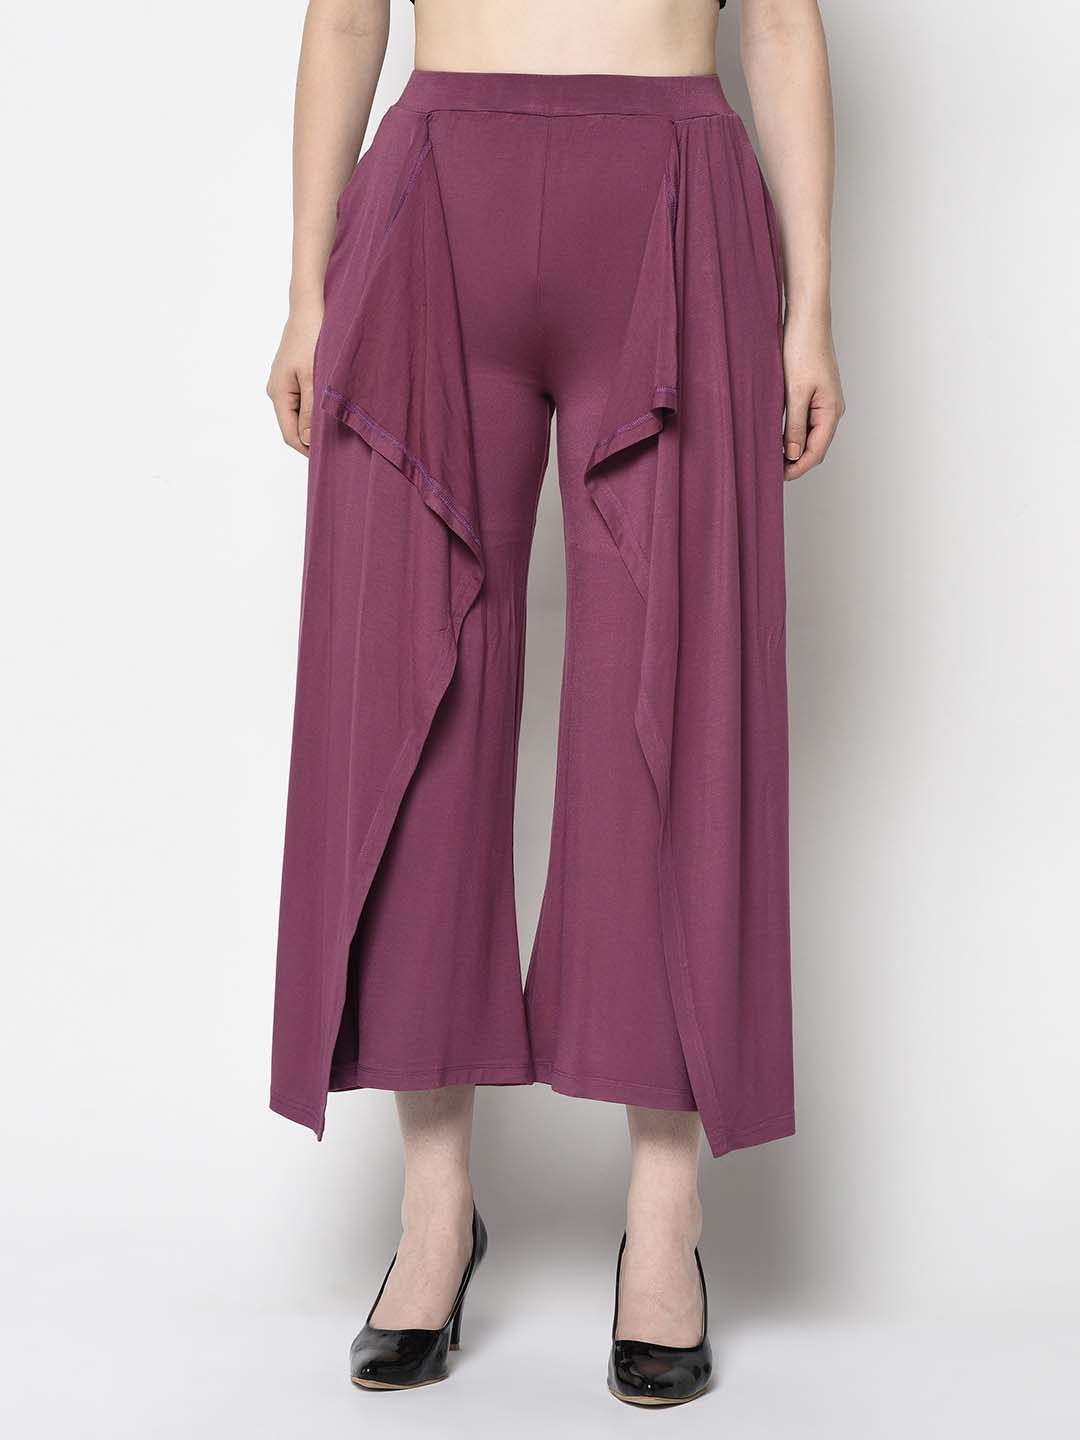 Cropped Maroon Pants With Frills